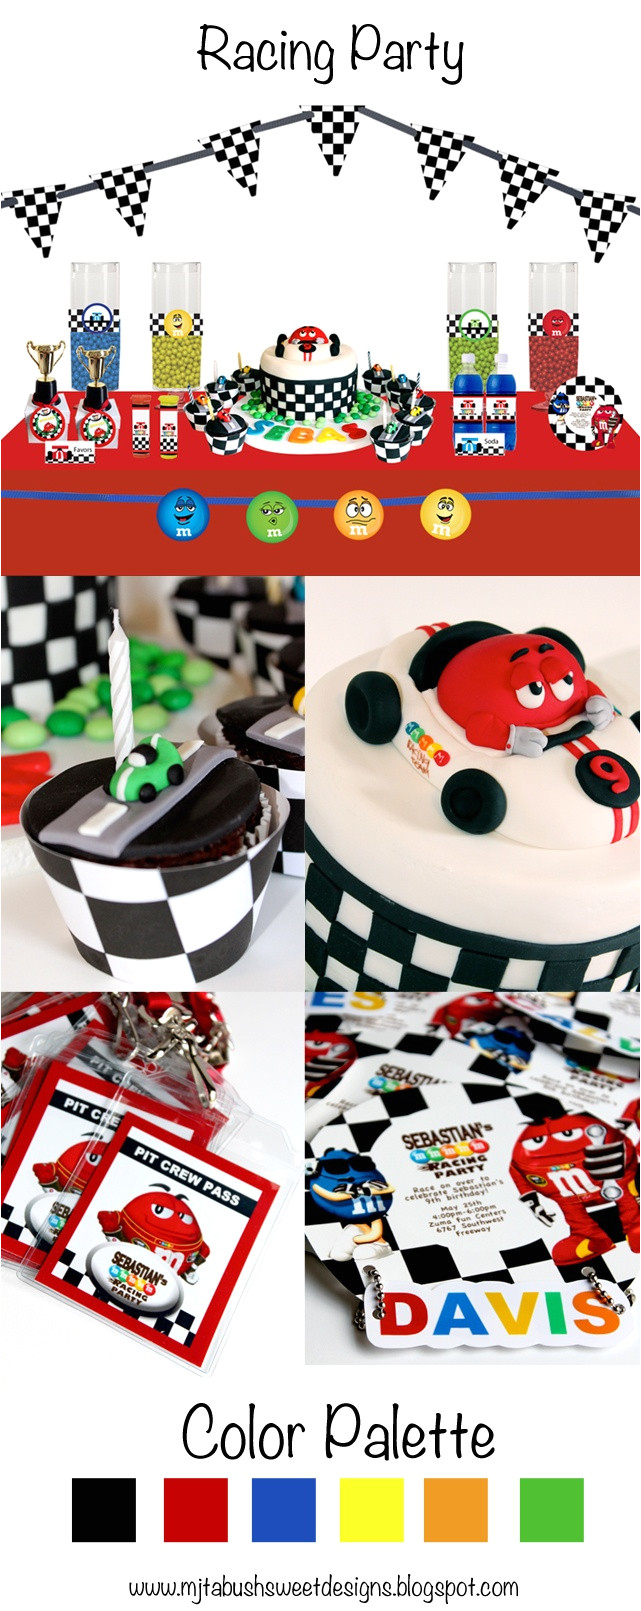 racing party theme carrerasbautismocelebracionesdecoracion fiestacumple autosfiesta